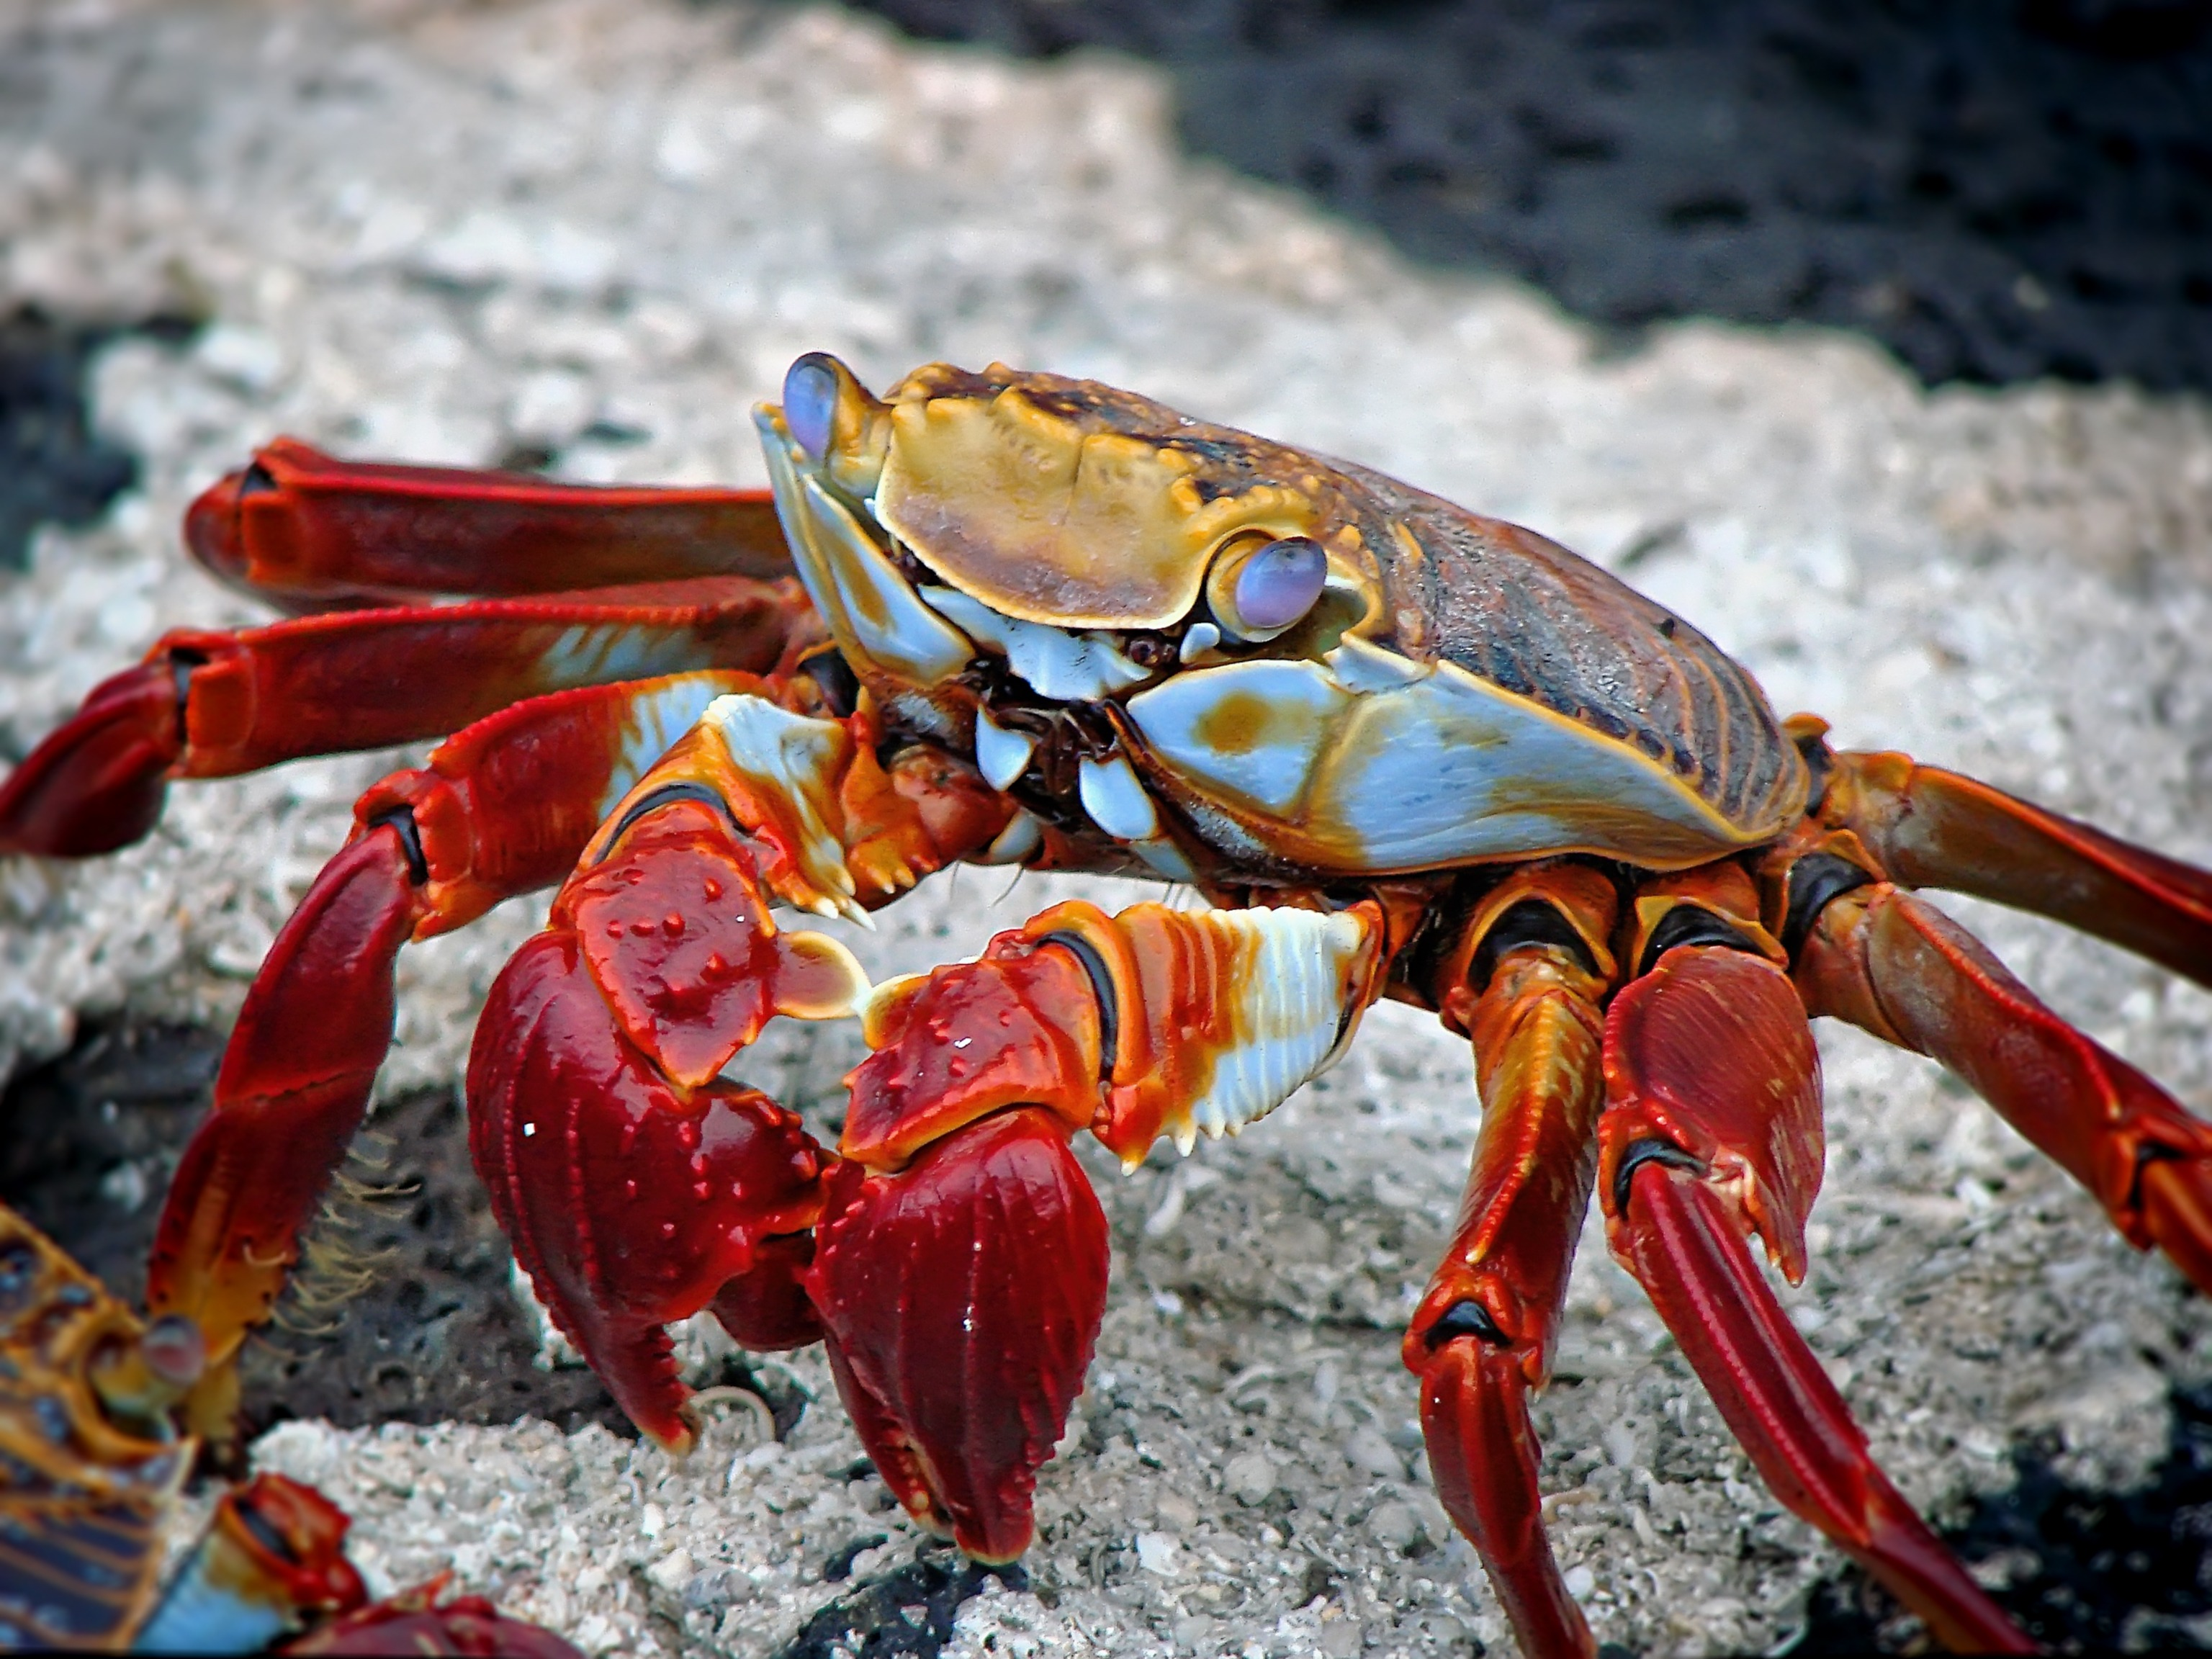 Iphone X Sand Wallpaper Free Stock Photo Of Beach Claw Crab